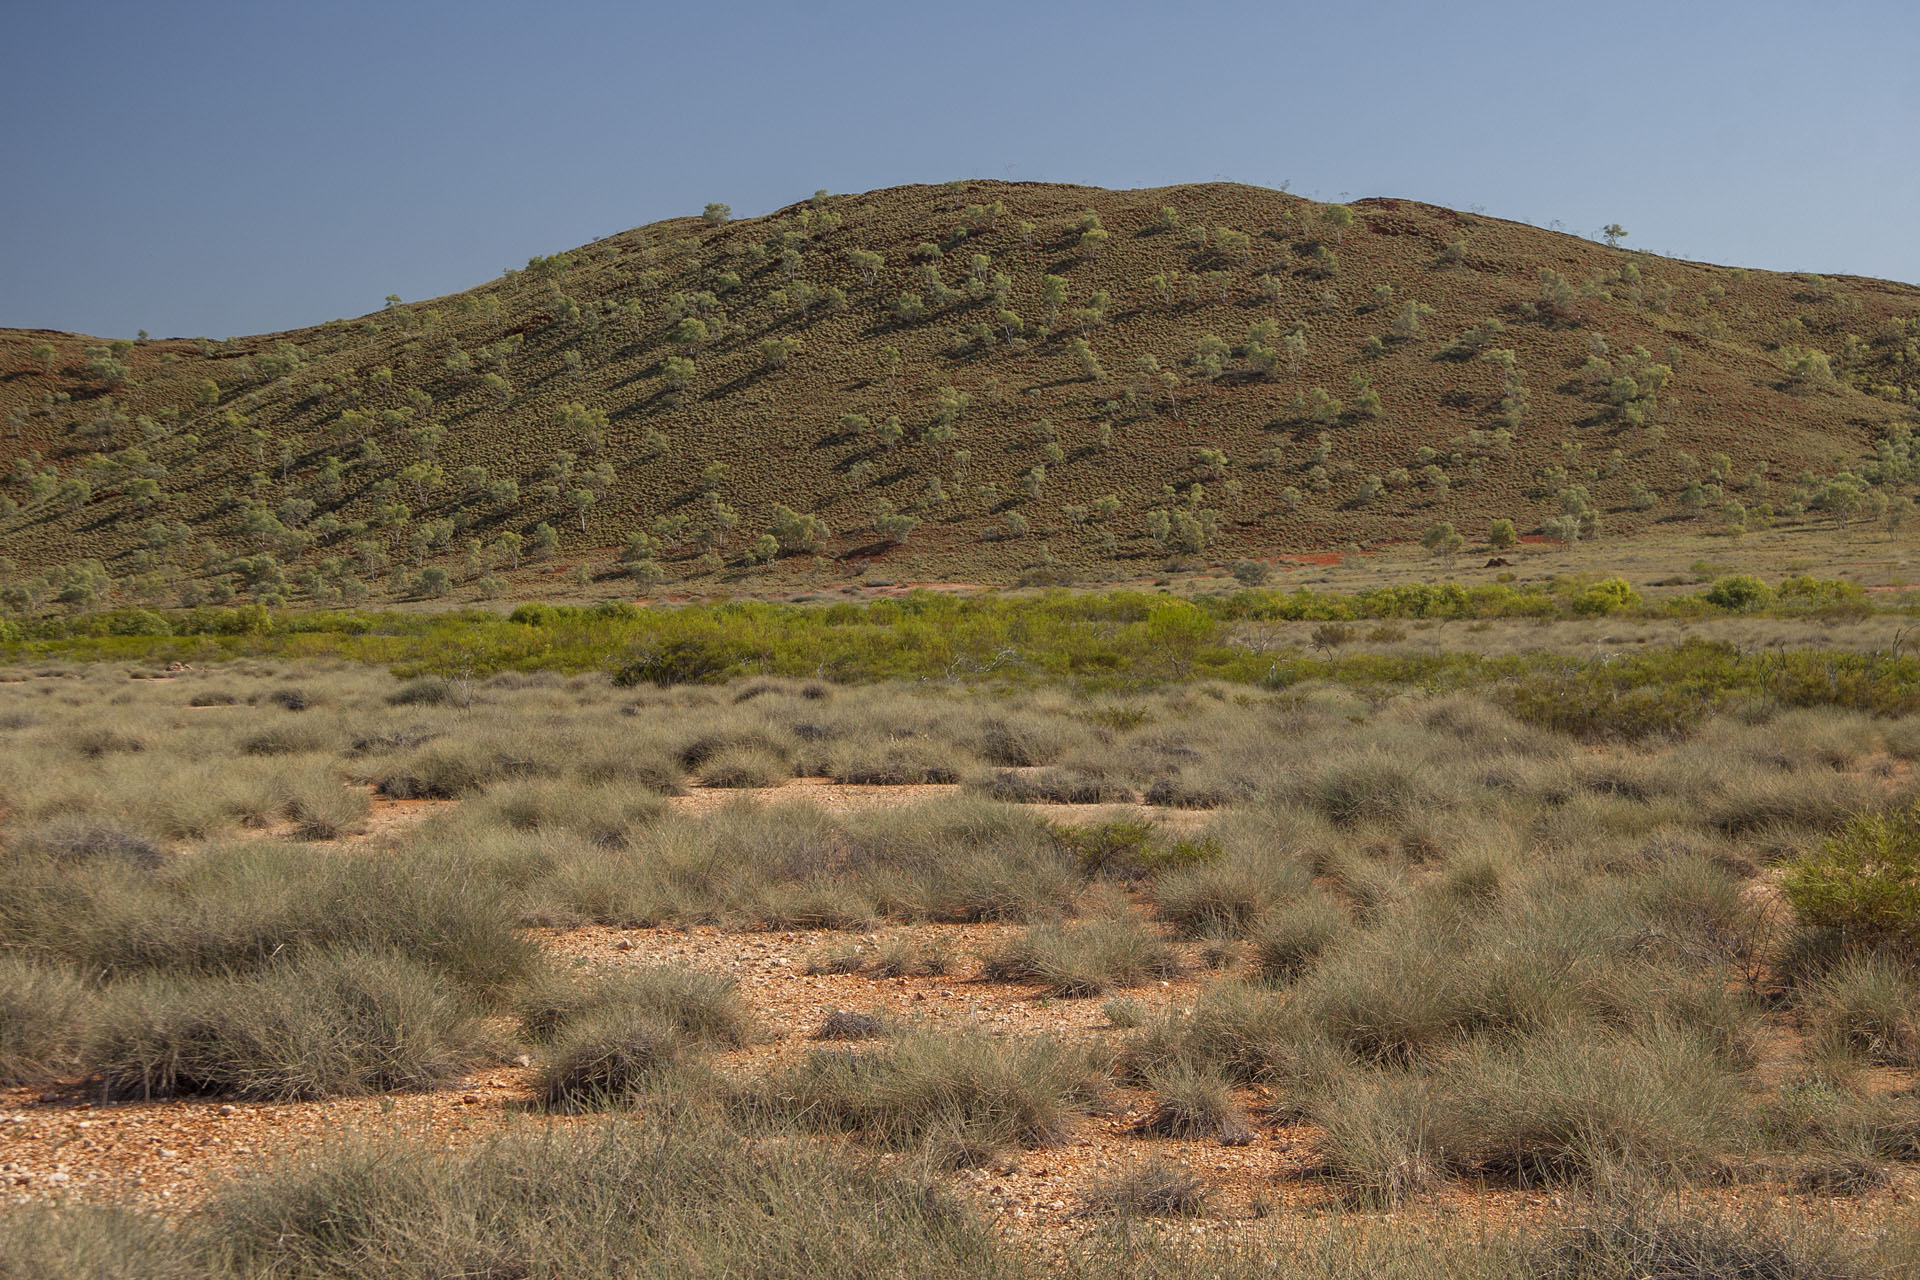 Hills, trees, spinifex.